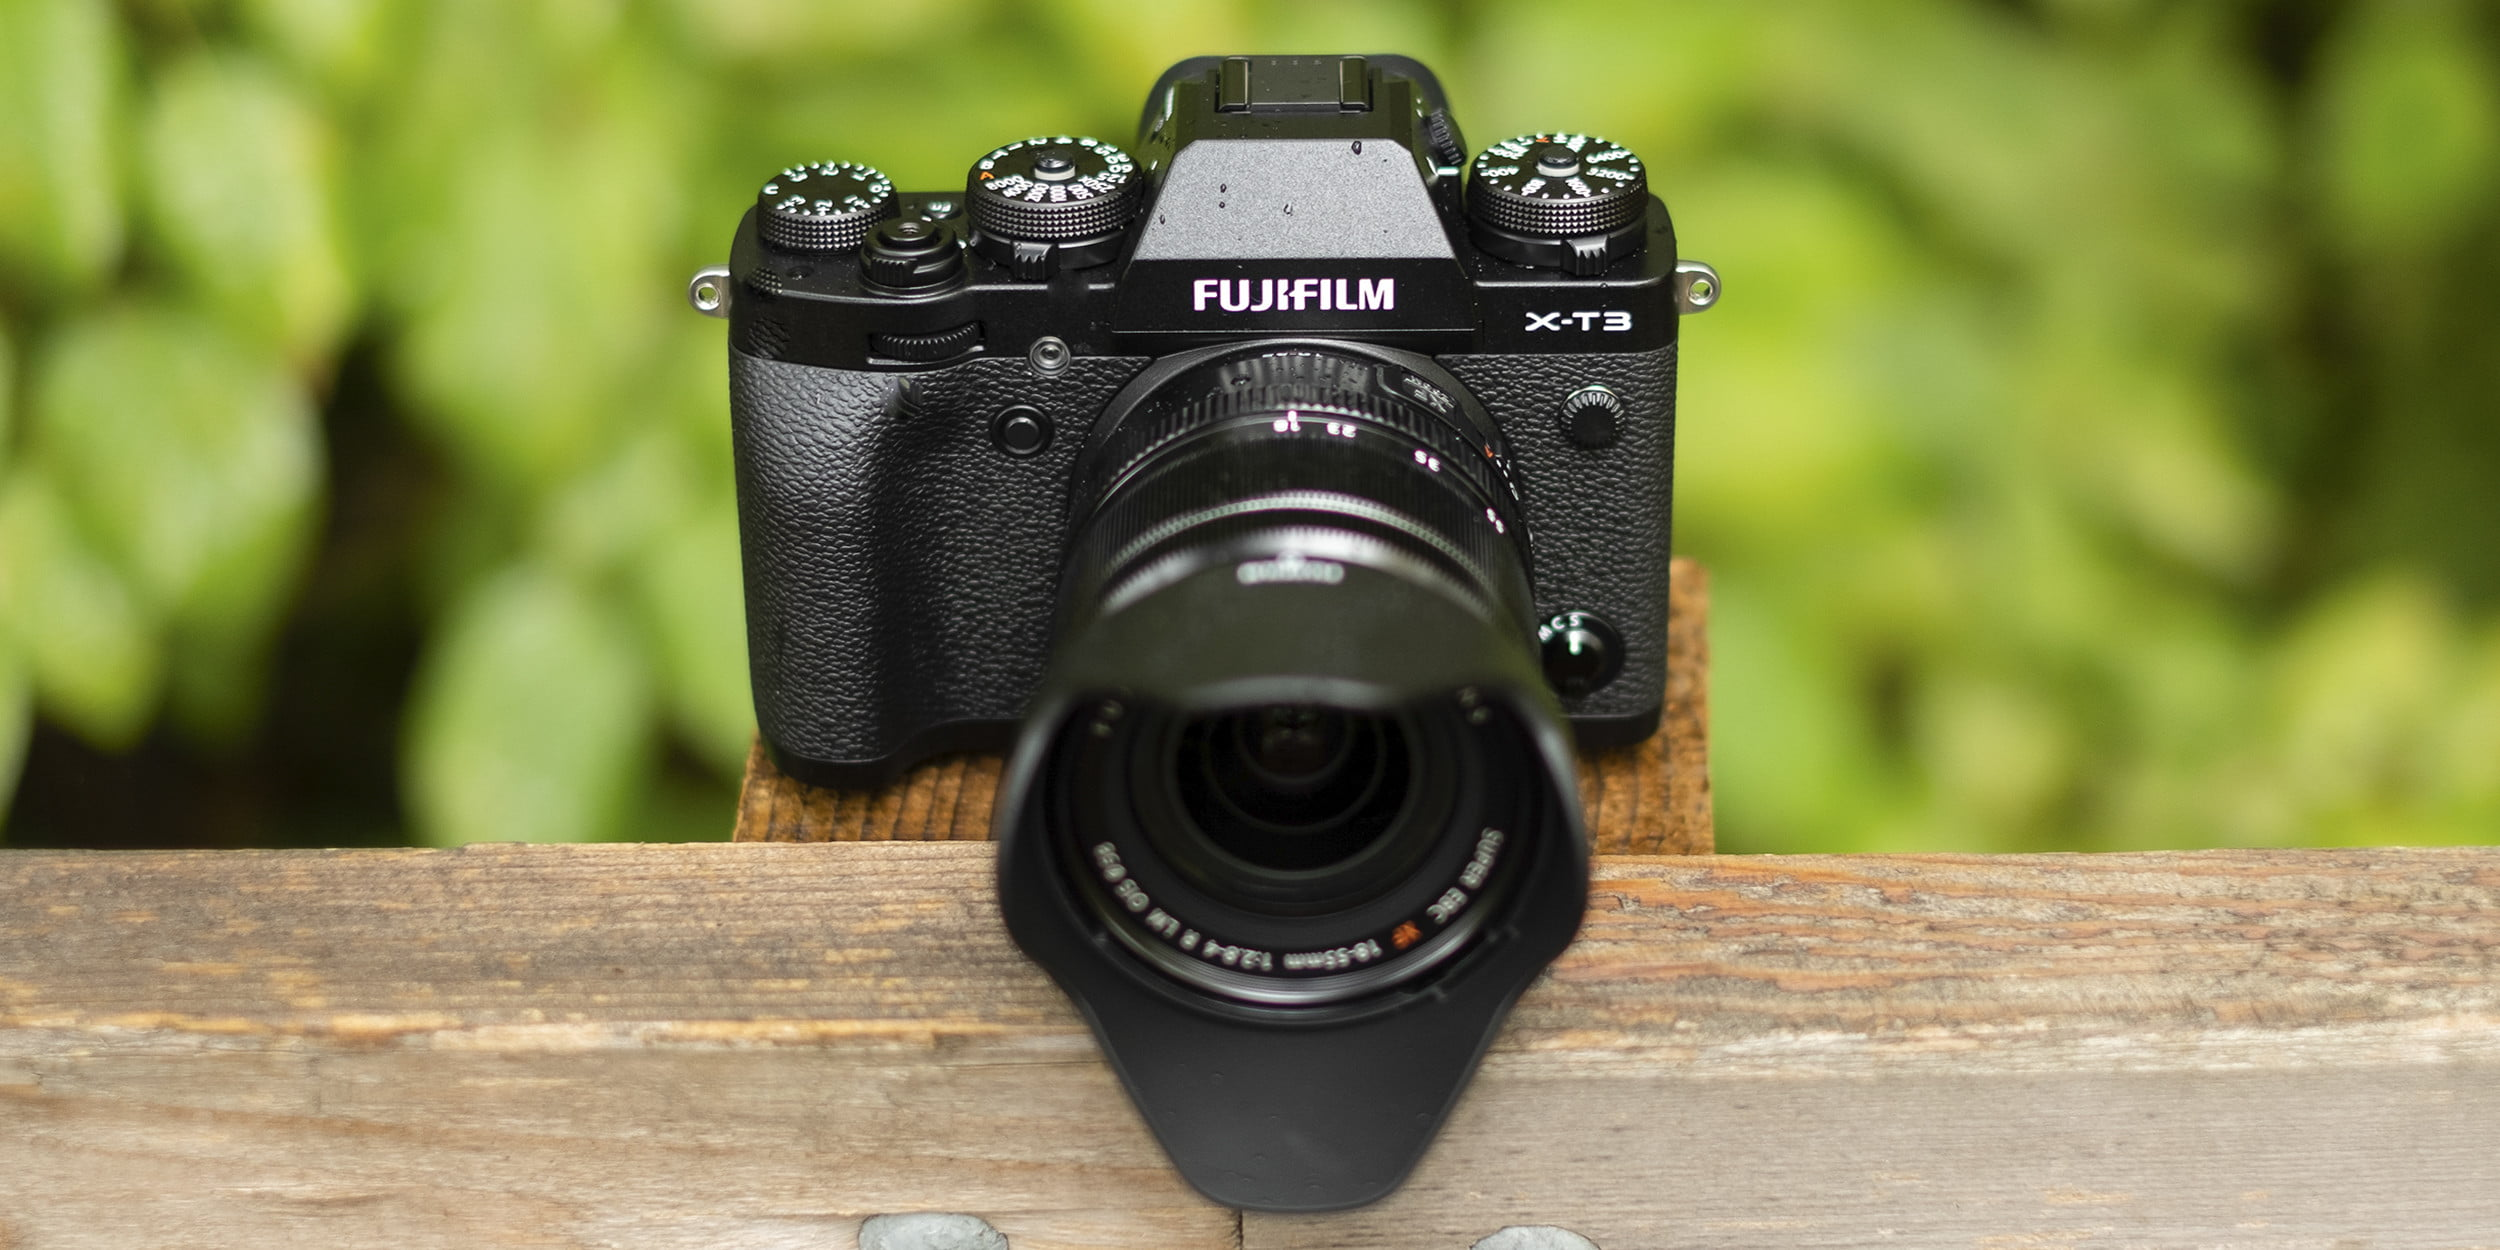 Fujifilm X T3 Review Why Fuss Over Full Frame Digital Trends Off If You Tip The Camera This Fully Exposes Flash Circuit Ultrawide Image